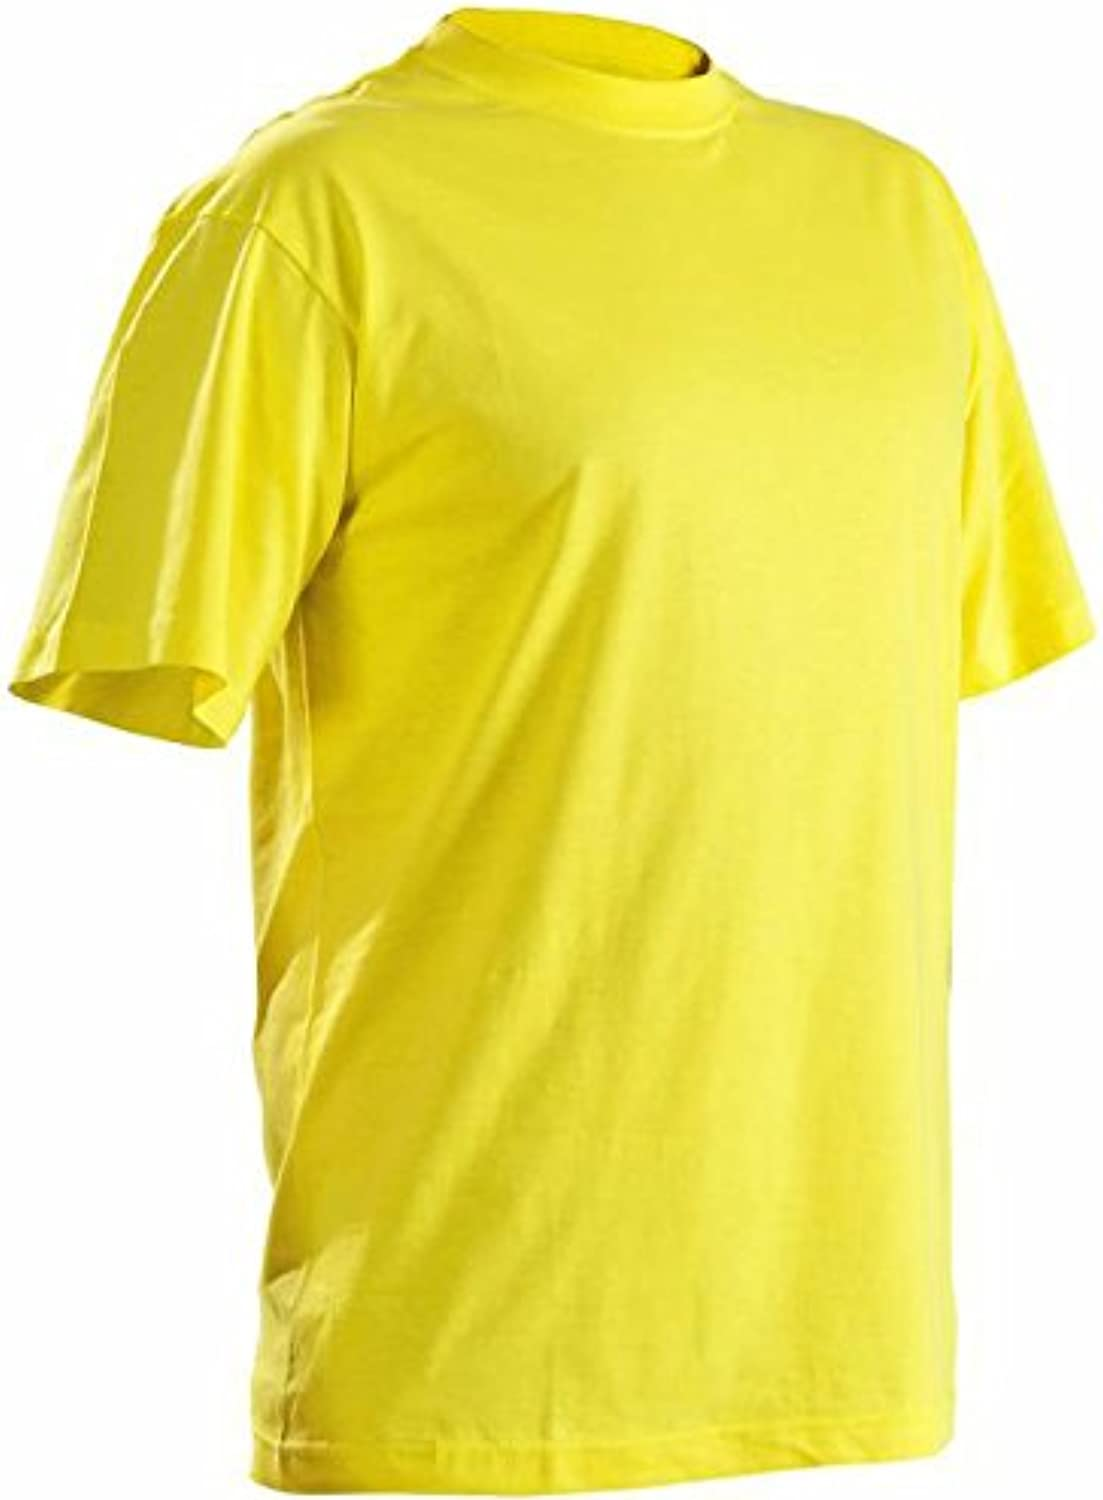 332510423300XS TShirt 5 Pack Size XS in Yellow